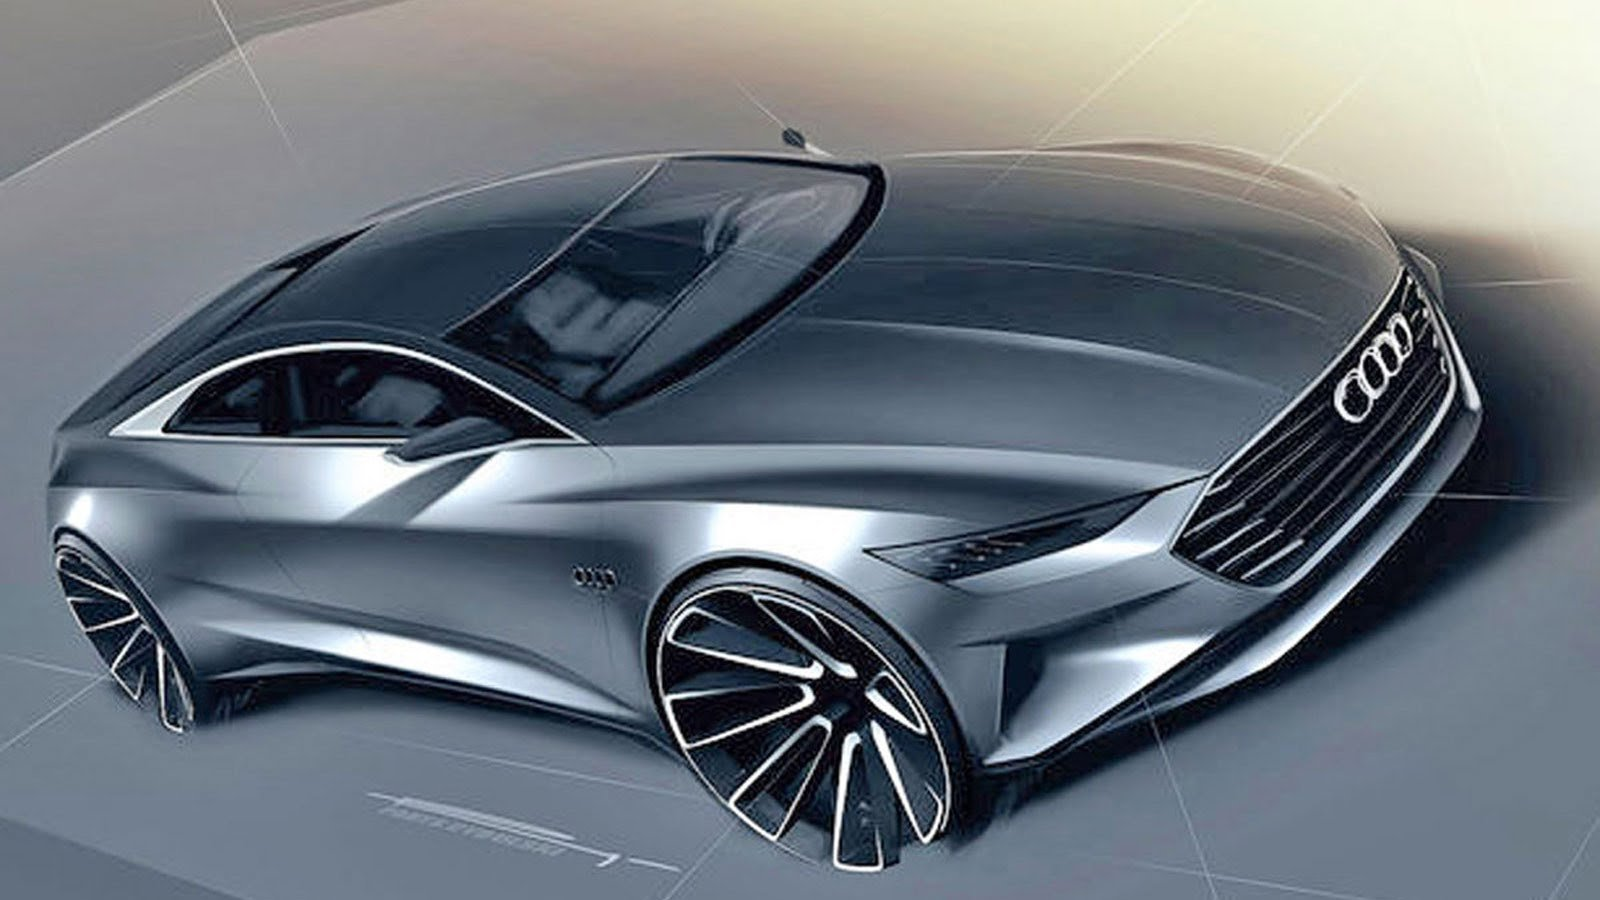 Audi A9 2020 - Audi A9 E Tron Gets Green Light For Production Due In 2020 Report Caradvice / By ...